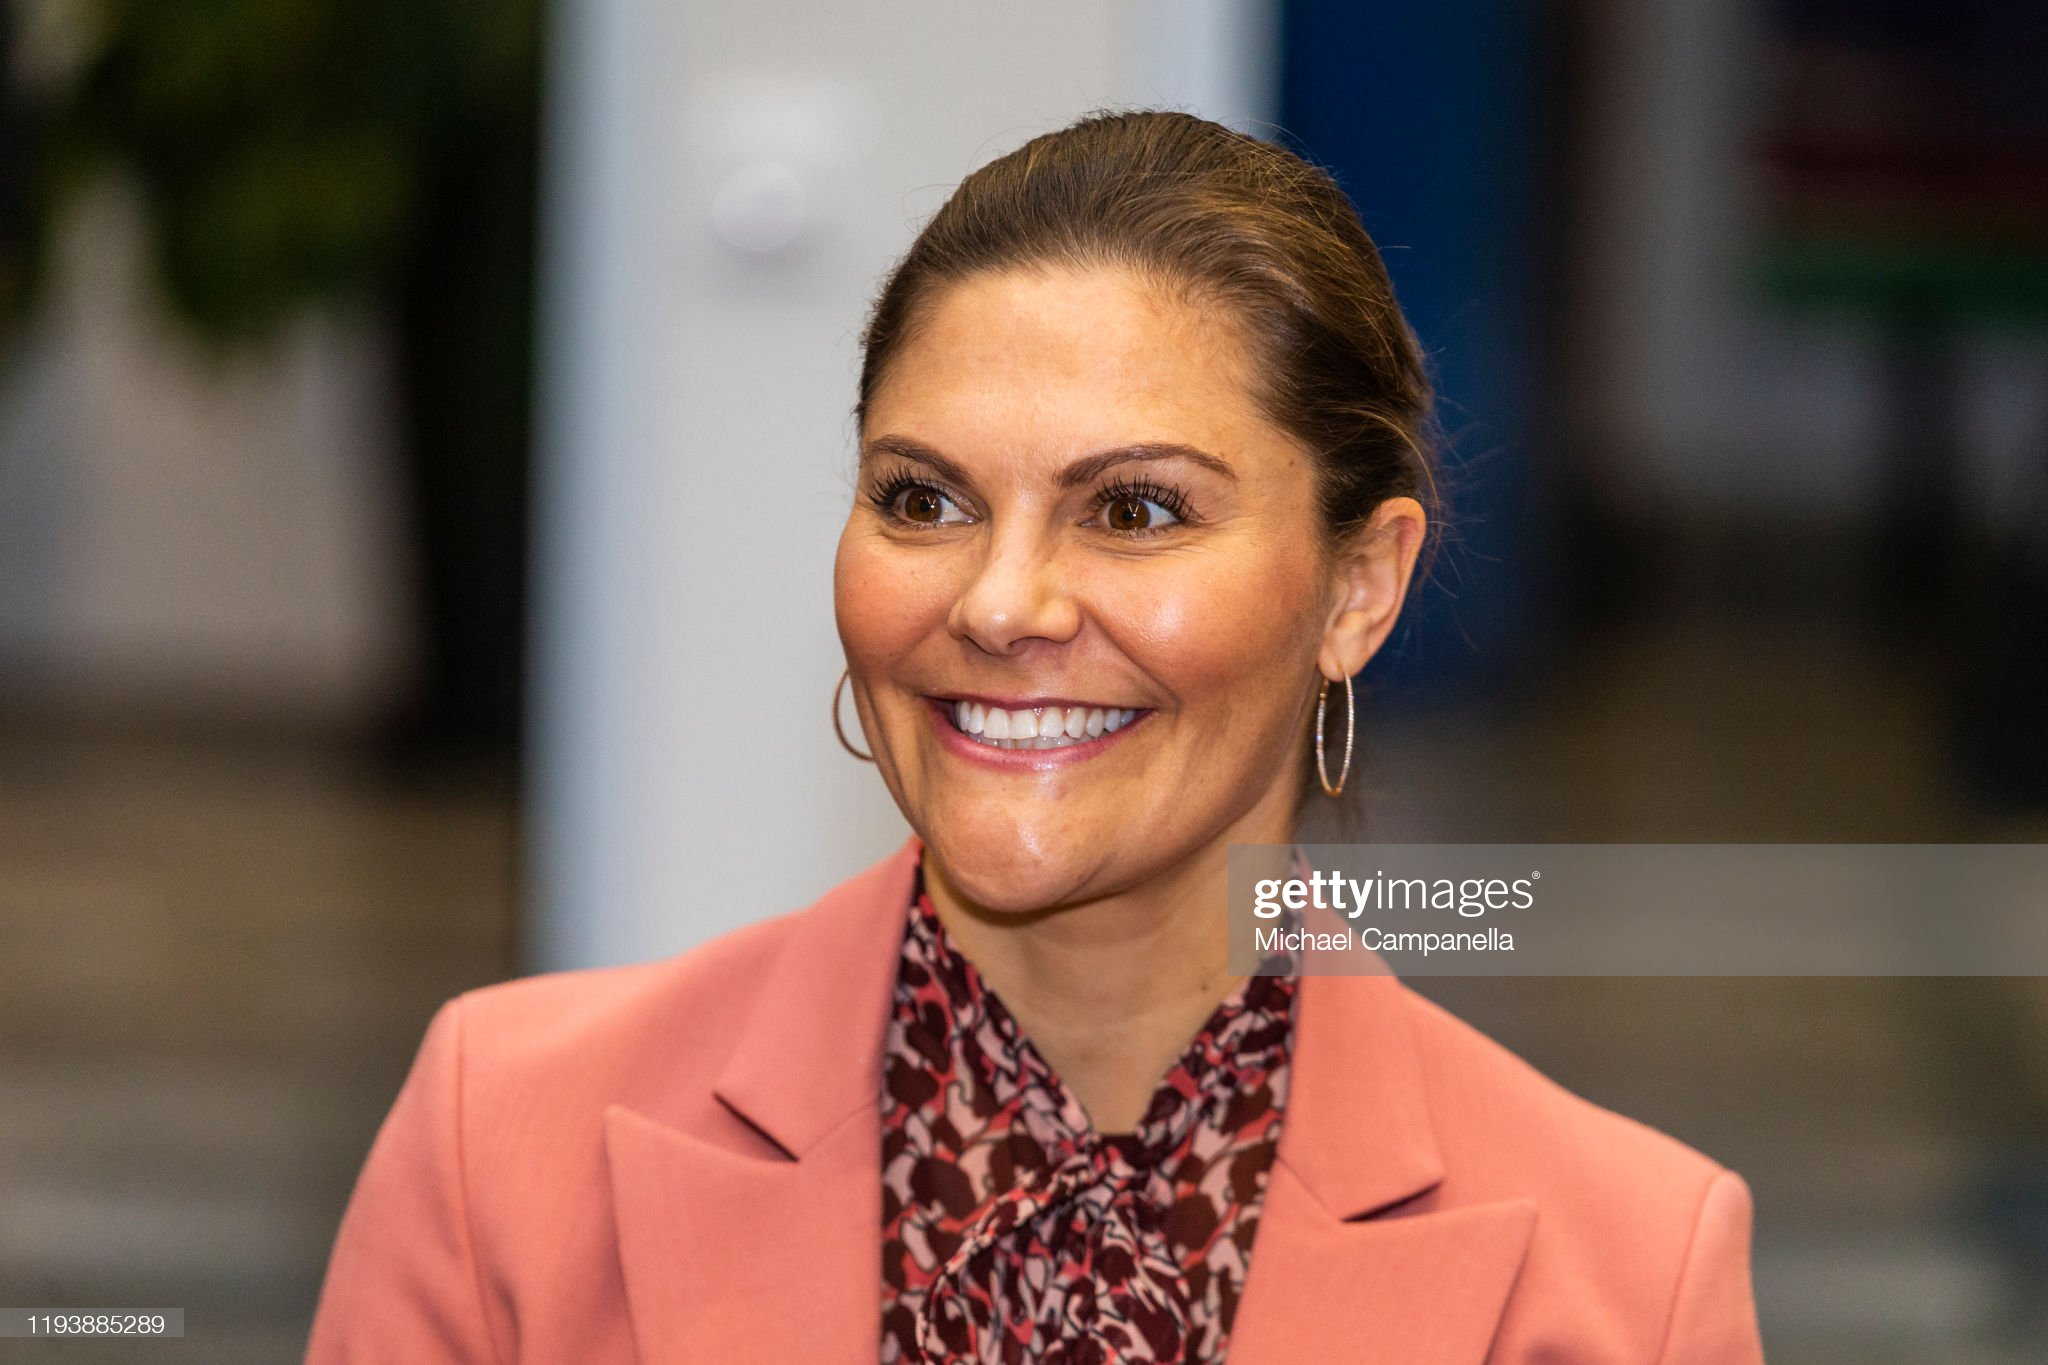 crown-princess-victoria-of-sweden-visits-the-swedish-federation-for-picture-id1193885289